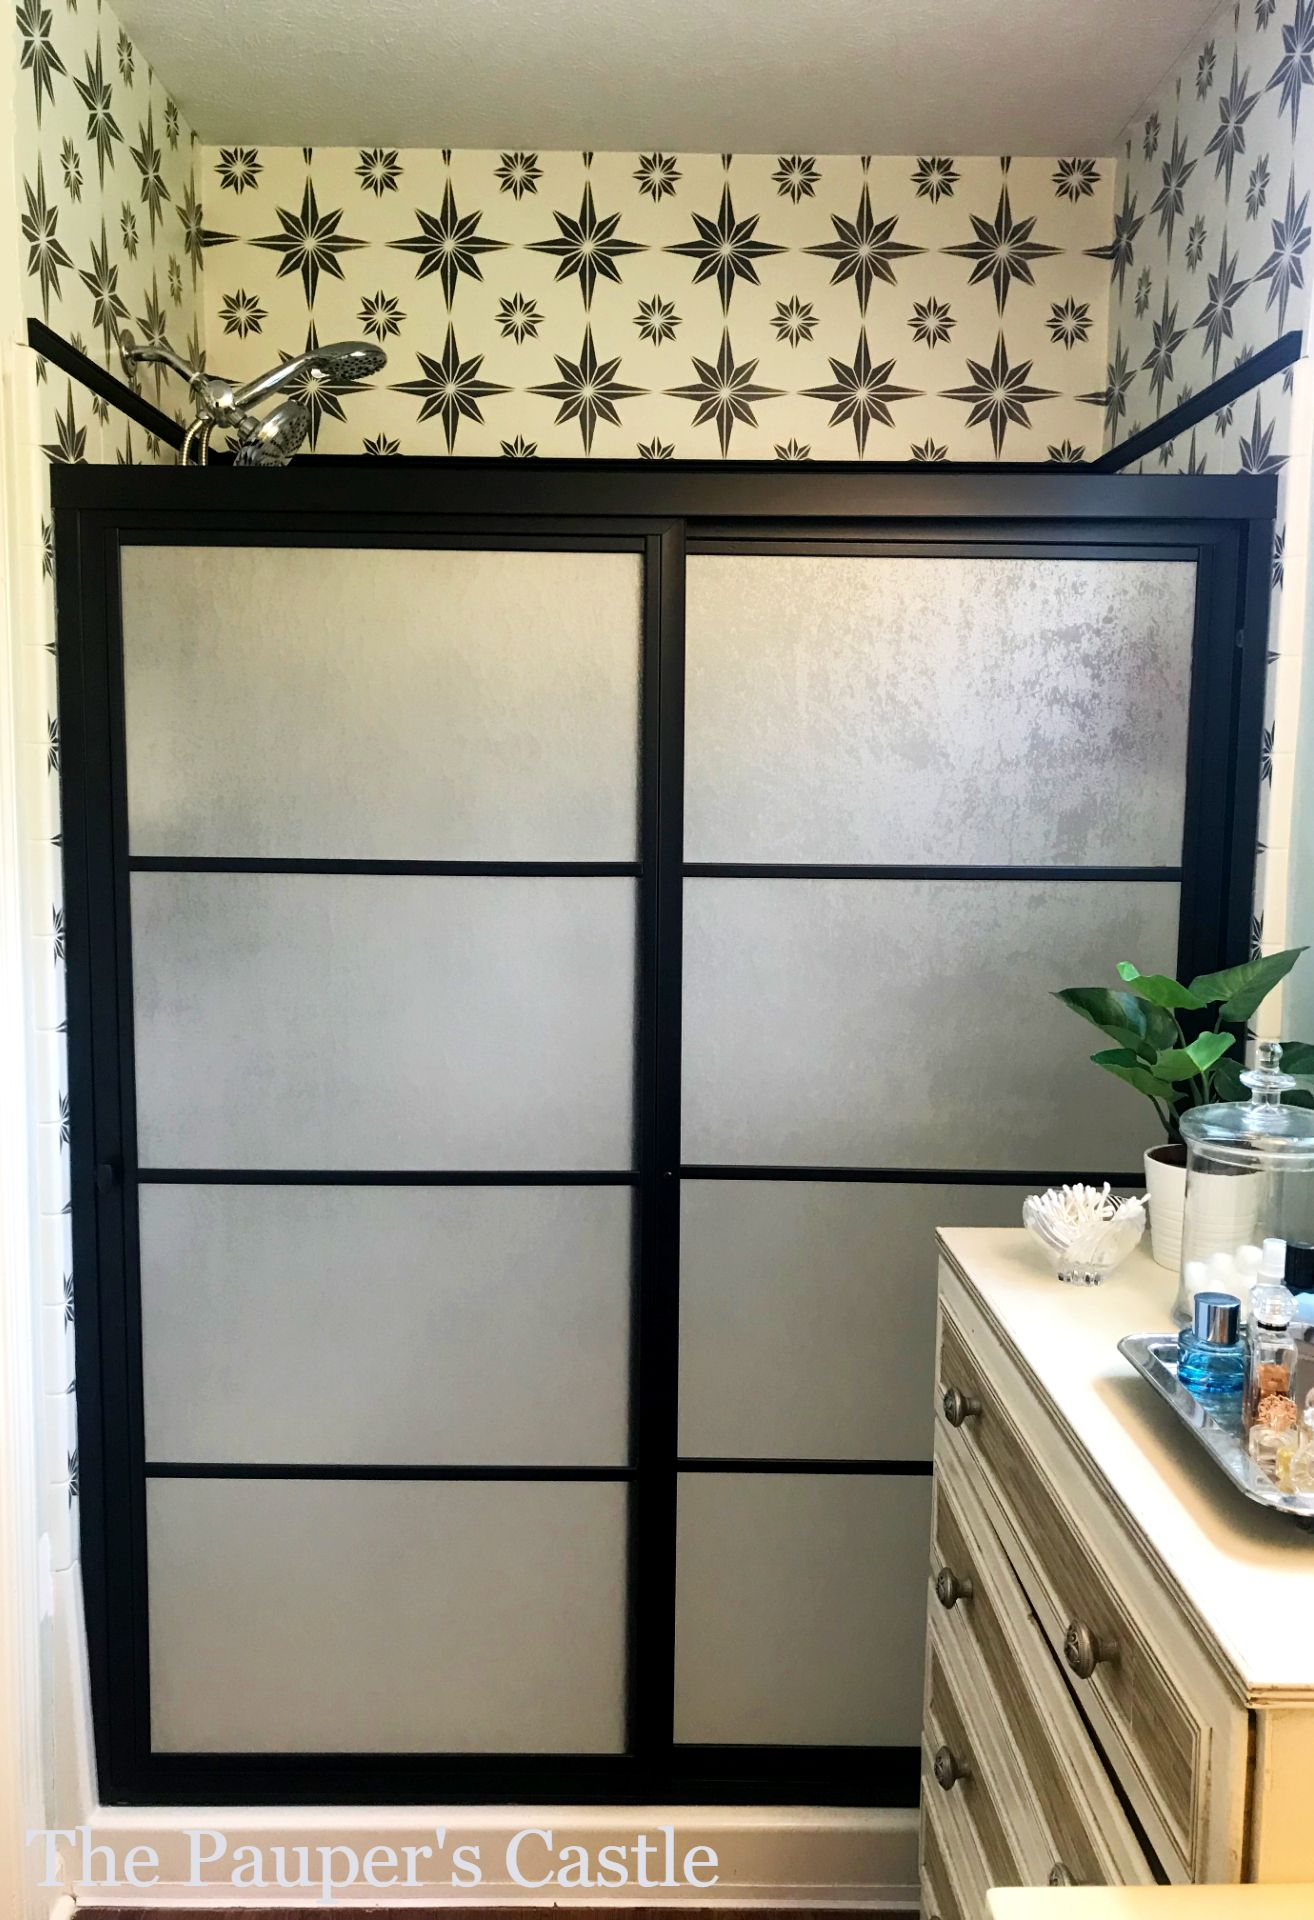 Don T Replace Restyle Your Old Shower Doors With Paint And Trim The Pauper S Castle In 2020 Shower Doors Replace Shower Door Mobile Home Renovations